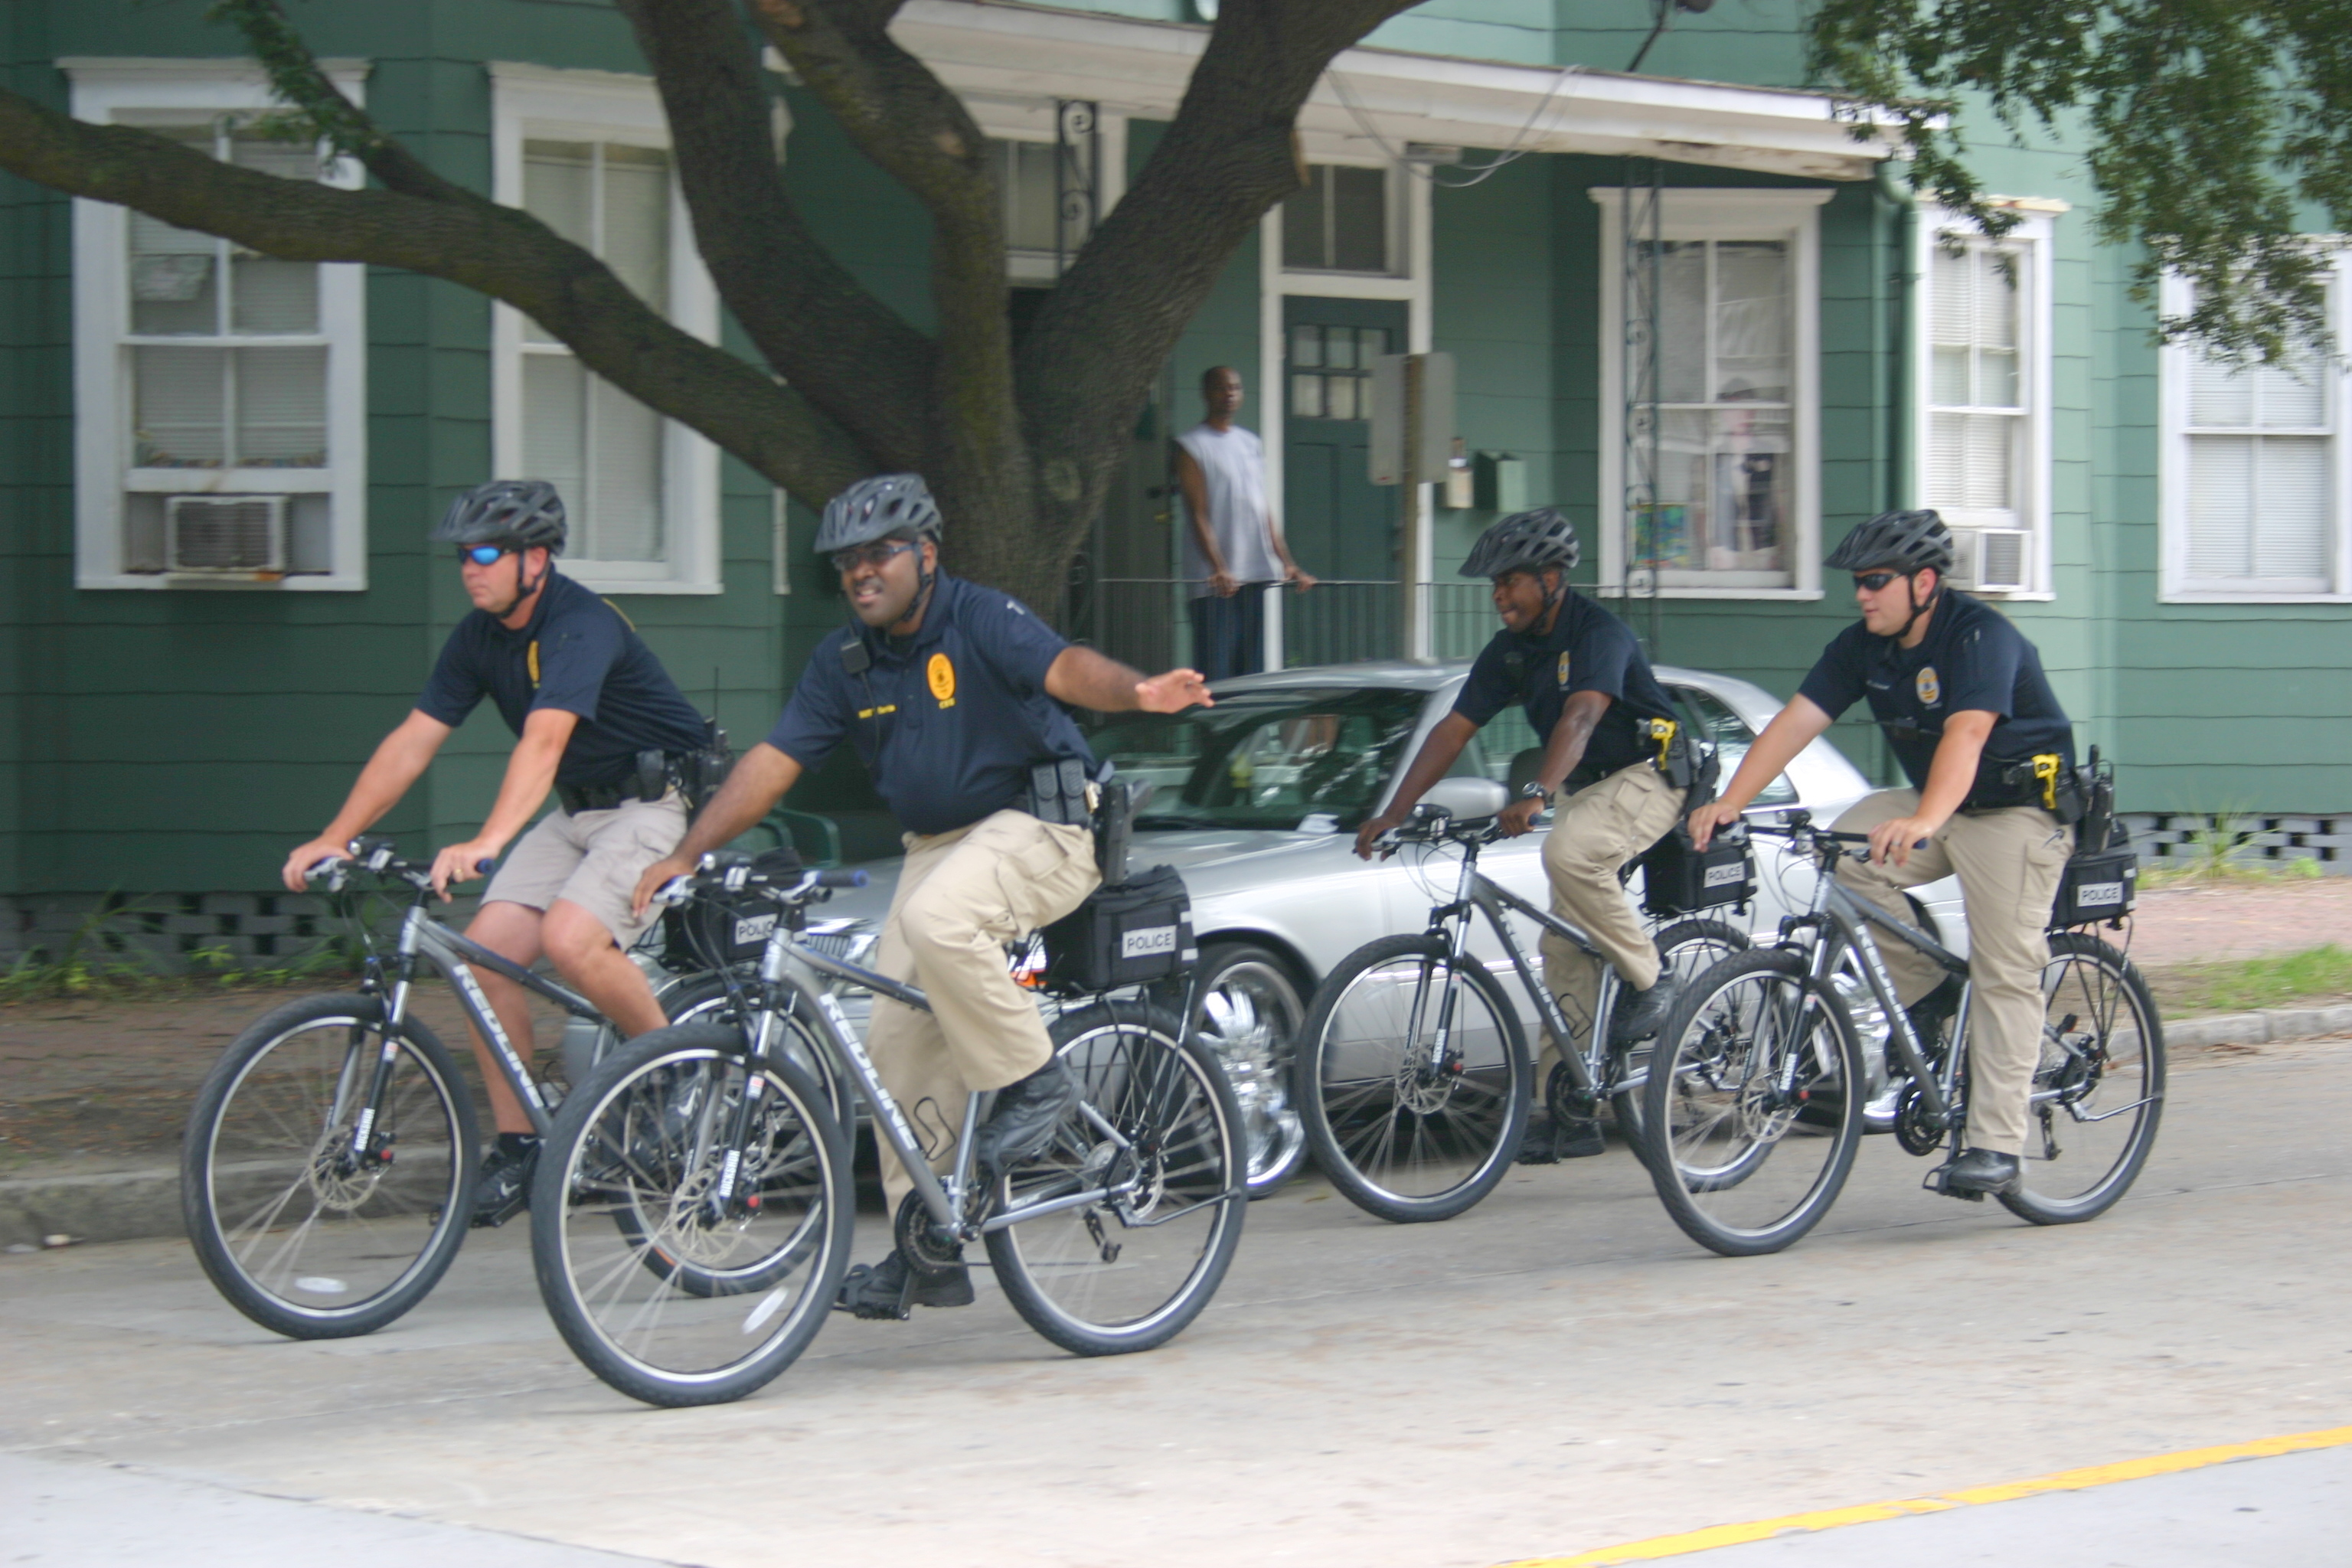 Central Pct, CSU officers on new police bicycles.